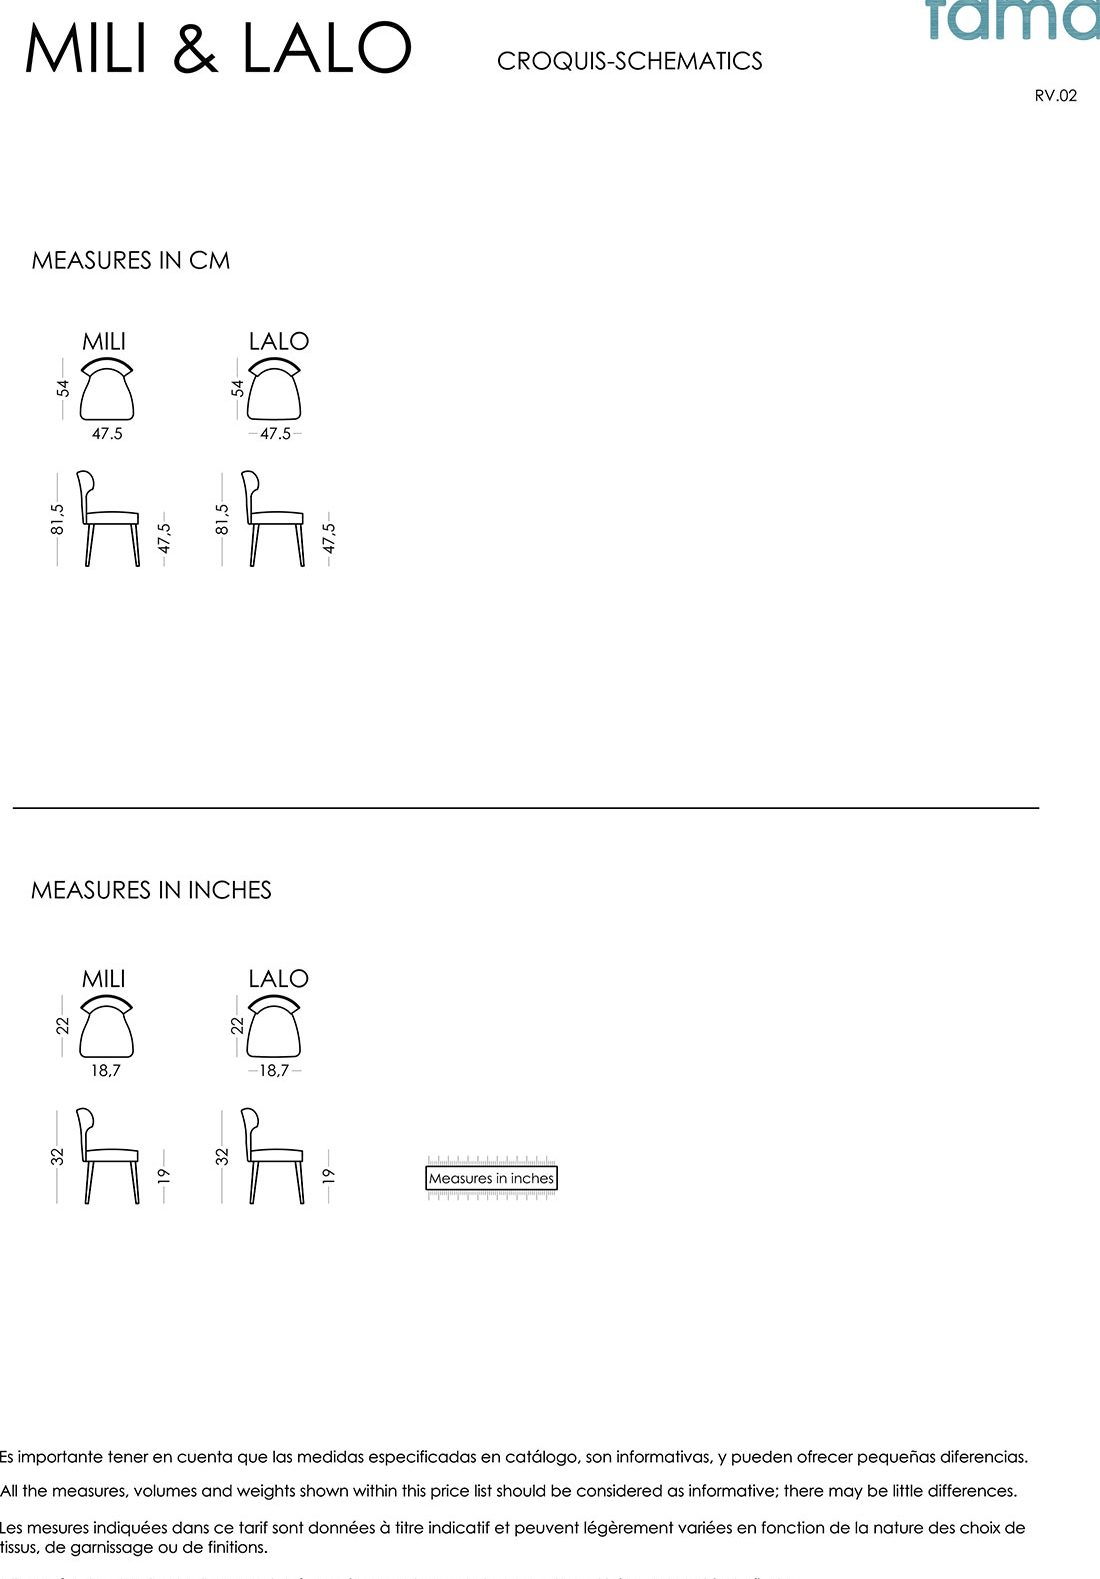 modern_chair_famaliving_montreal_mili-lalo_specification_sheet